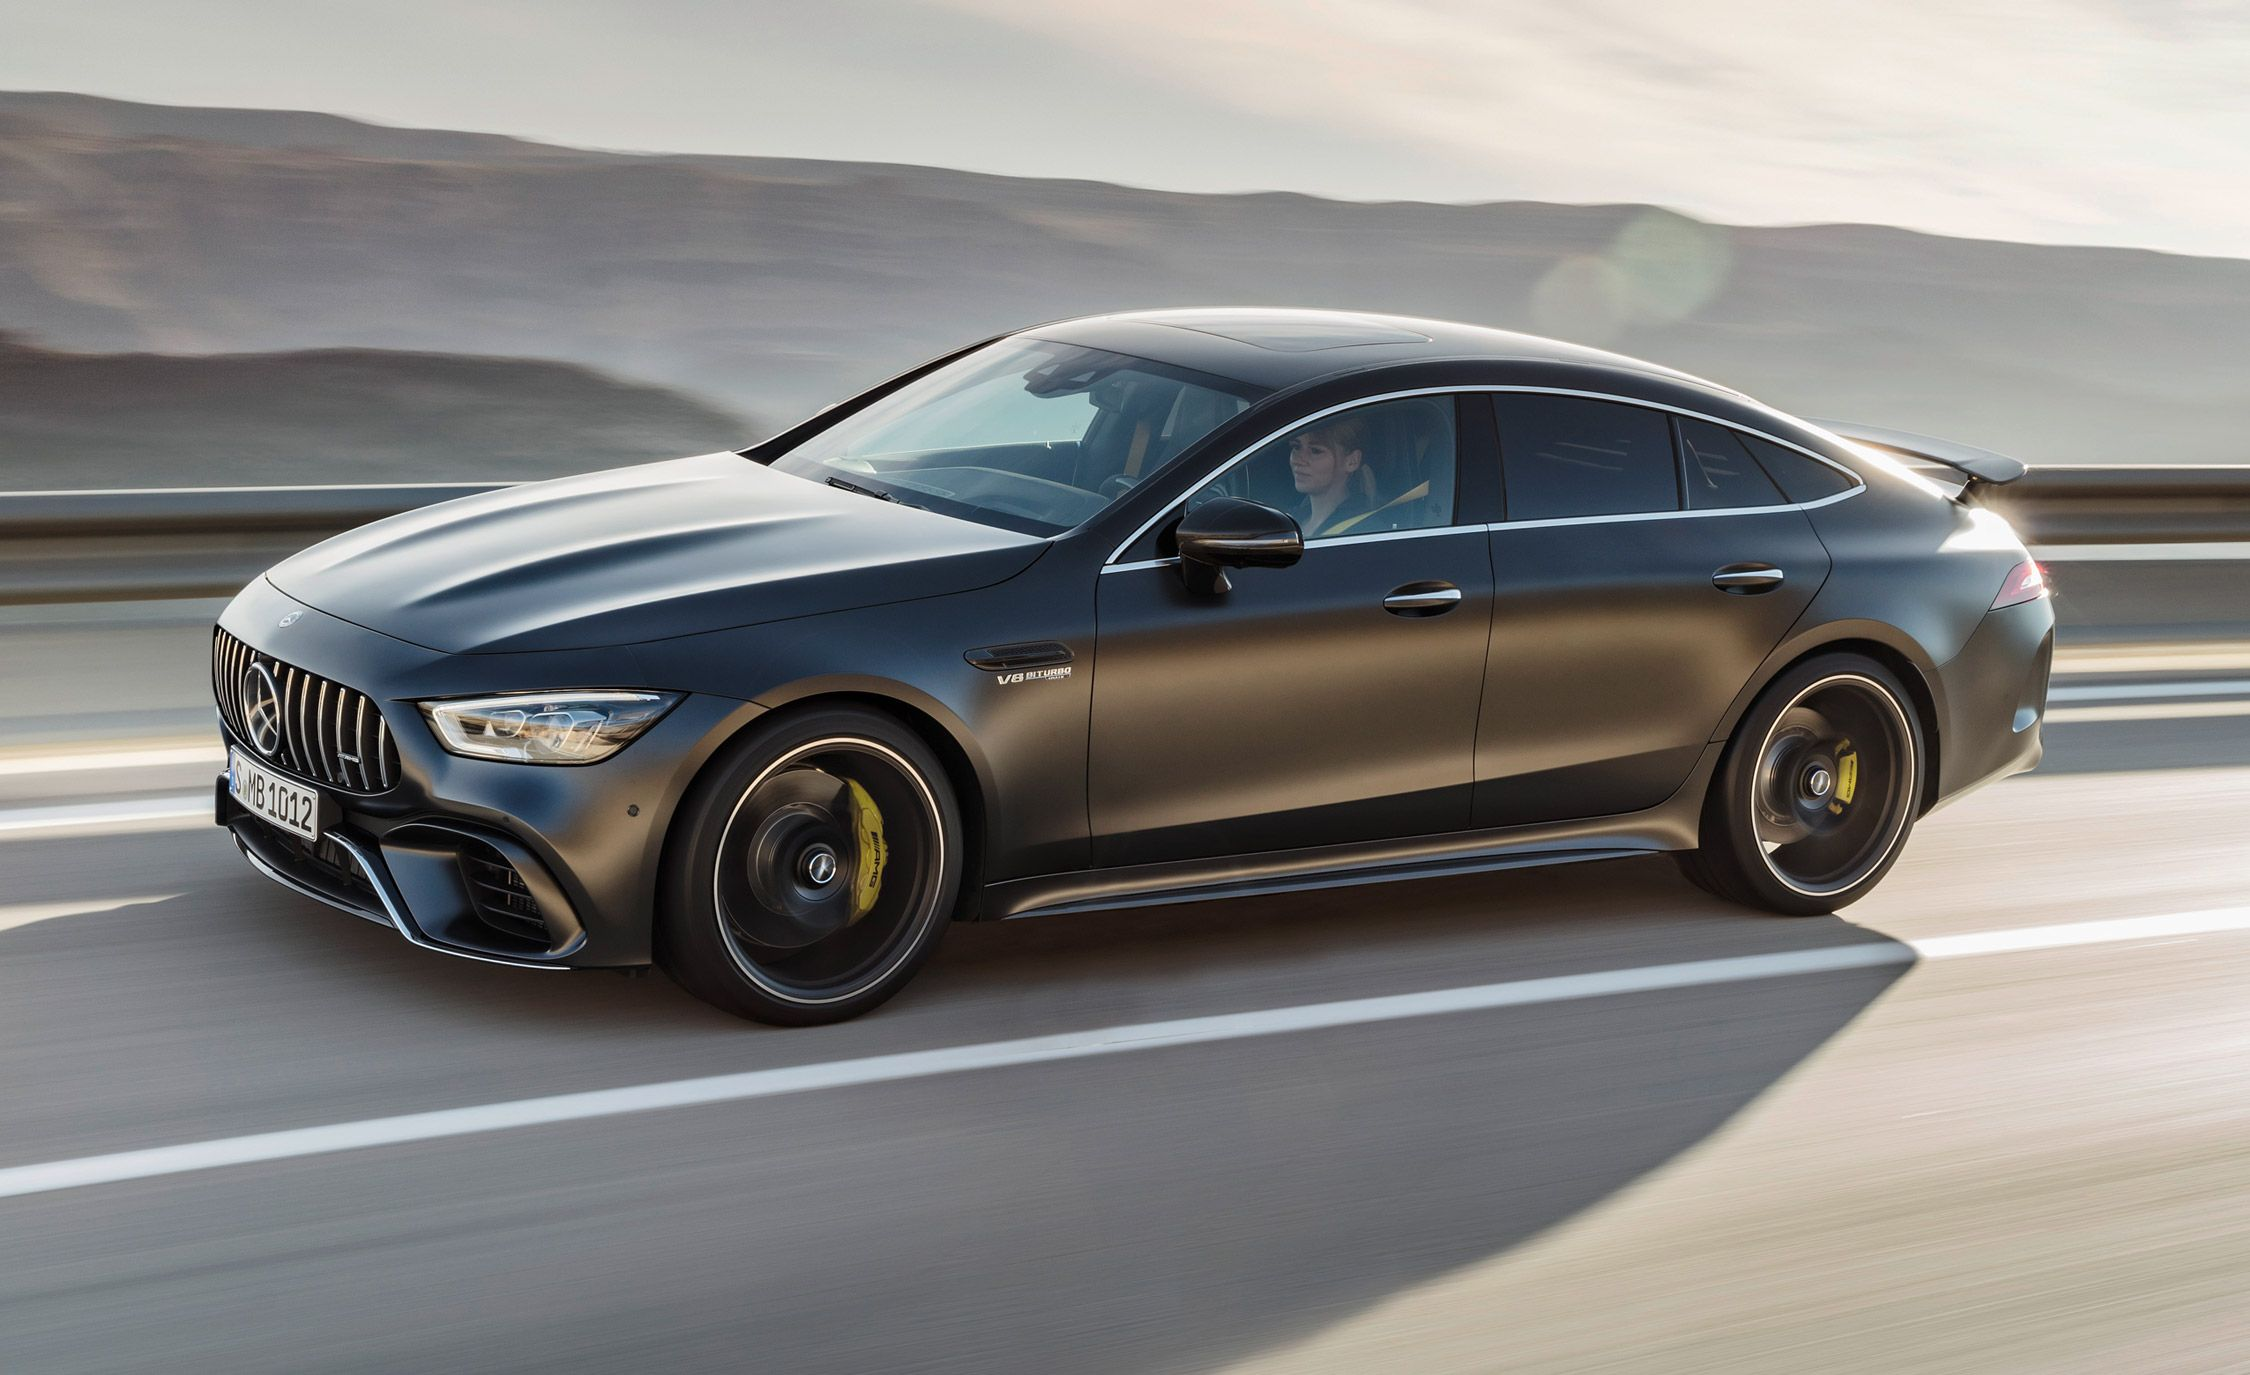 2018 Suvs Worth Waiting For >> 2019 Mercedes-AMG GT 4-Door Coupe: A Pure-Blooded Sports Sedan | 25 Cars Worth Waiting For | Car ...